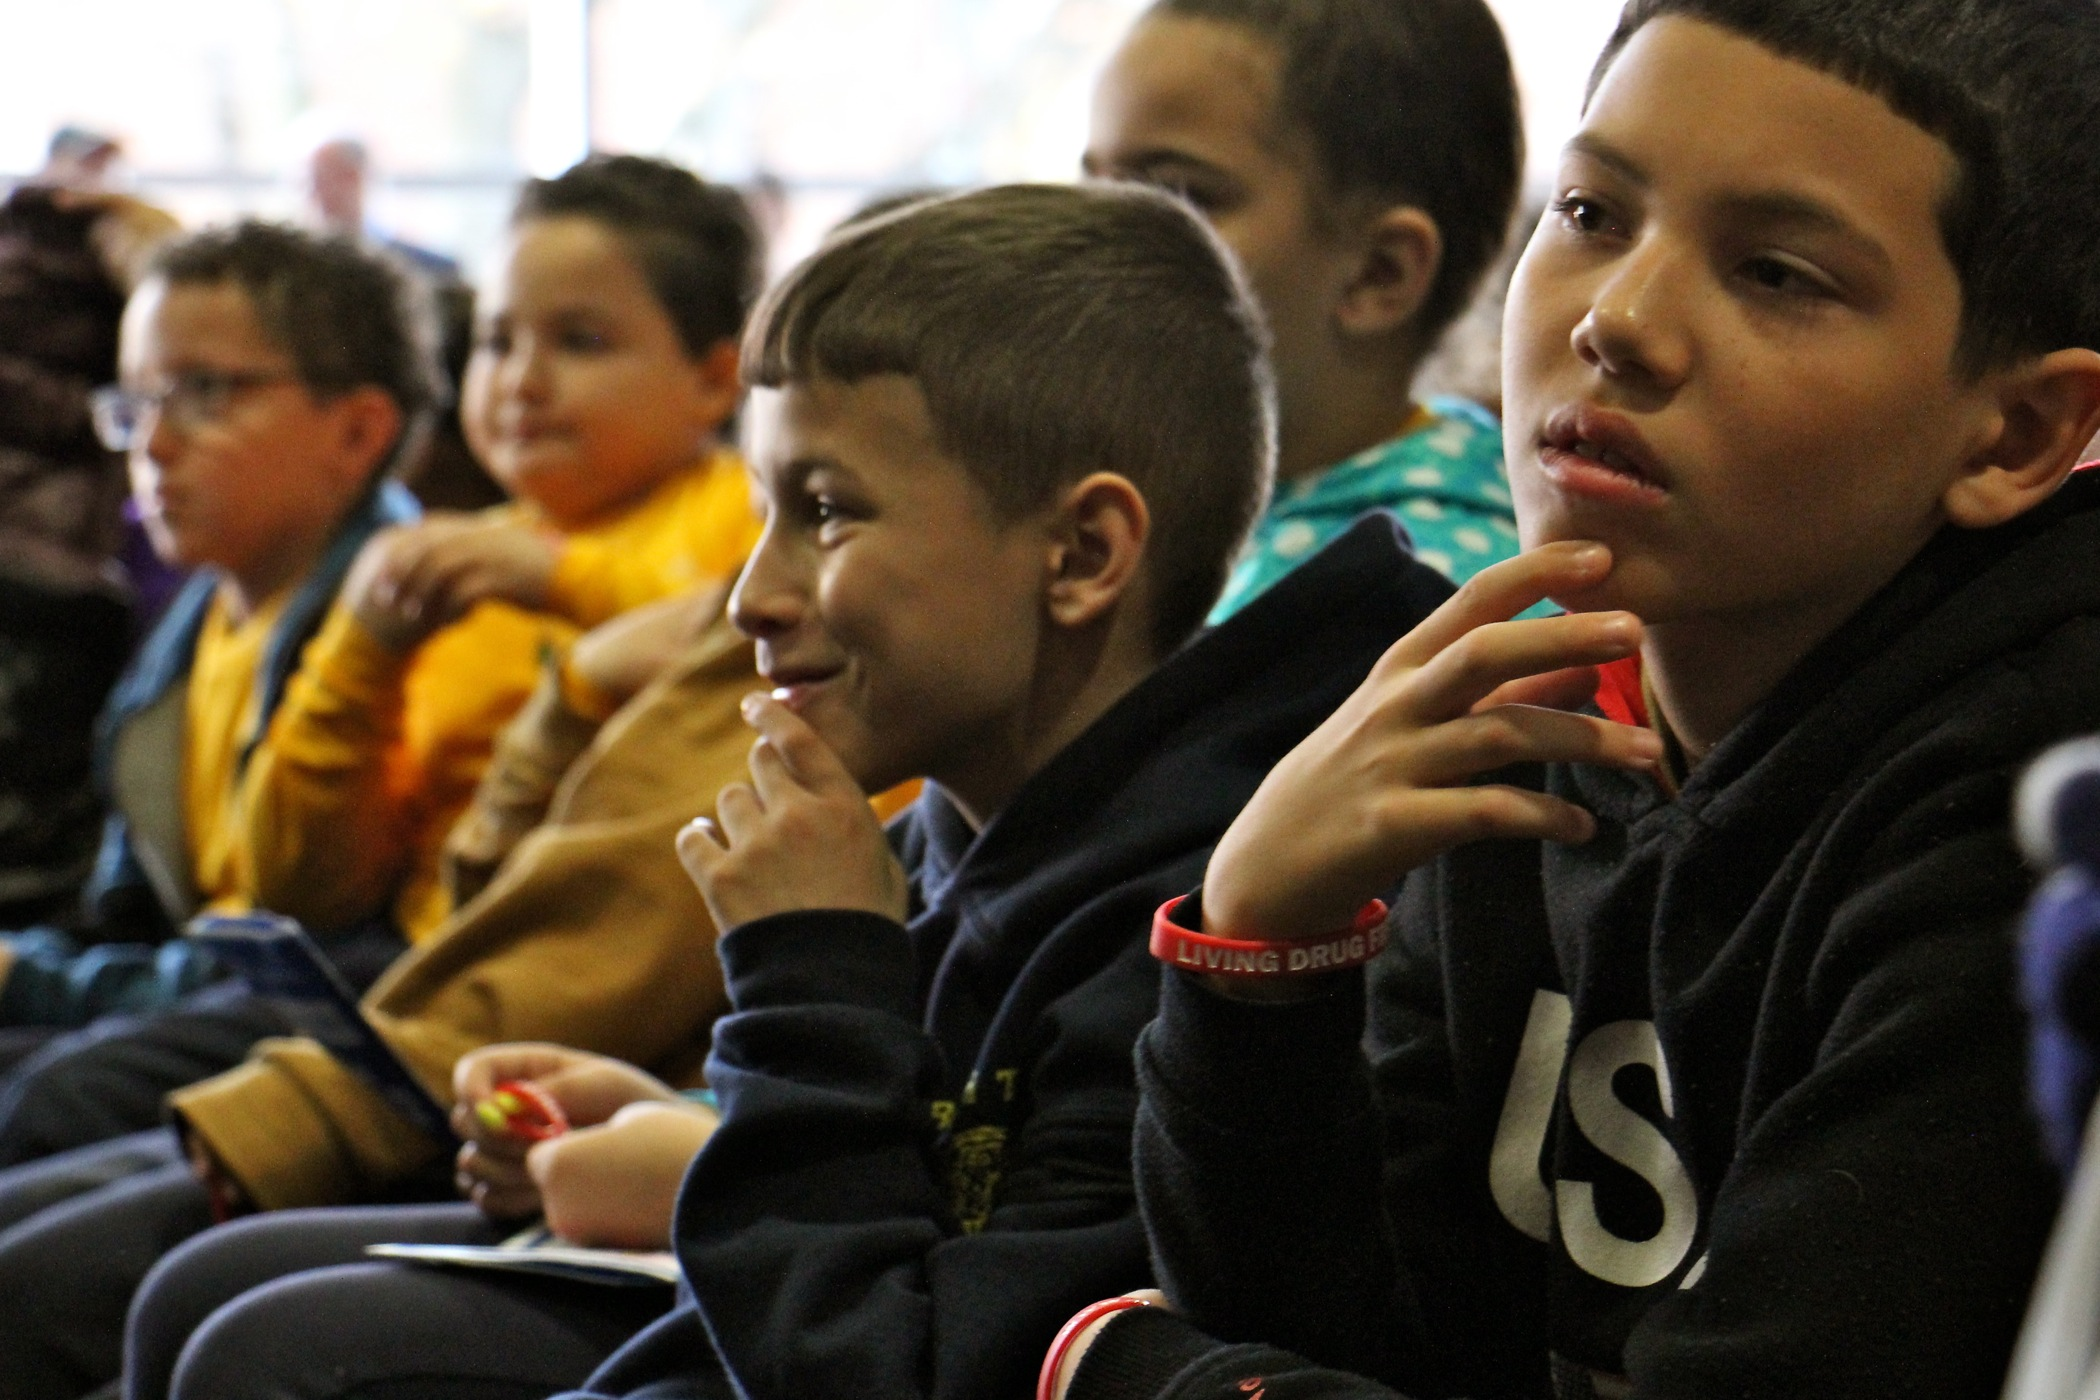 Philadelphia school children attend a youth summit on drug prevention at Temple University.